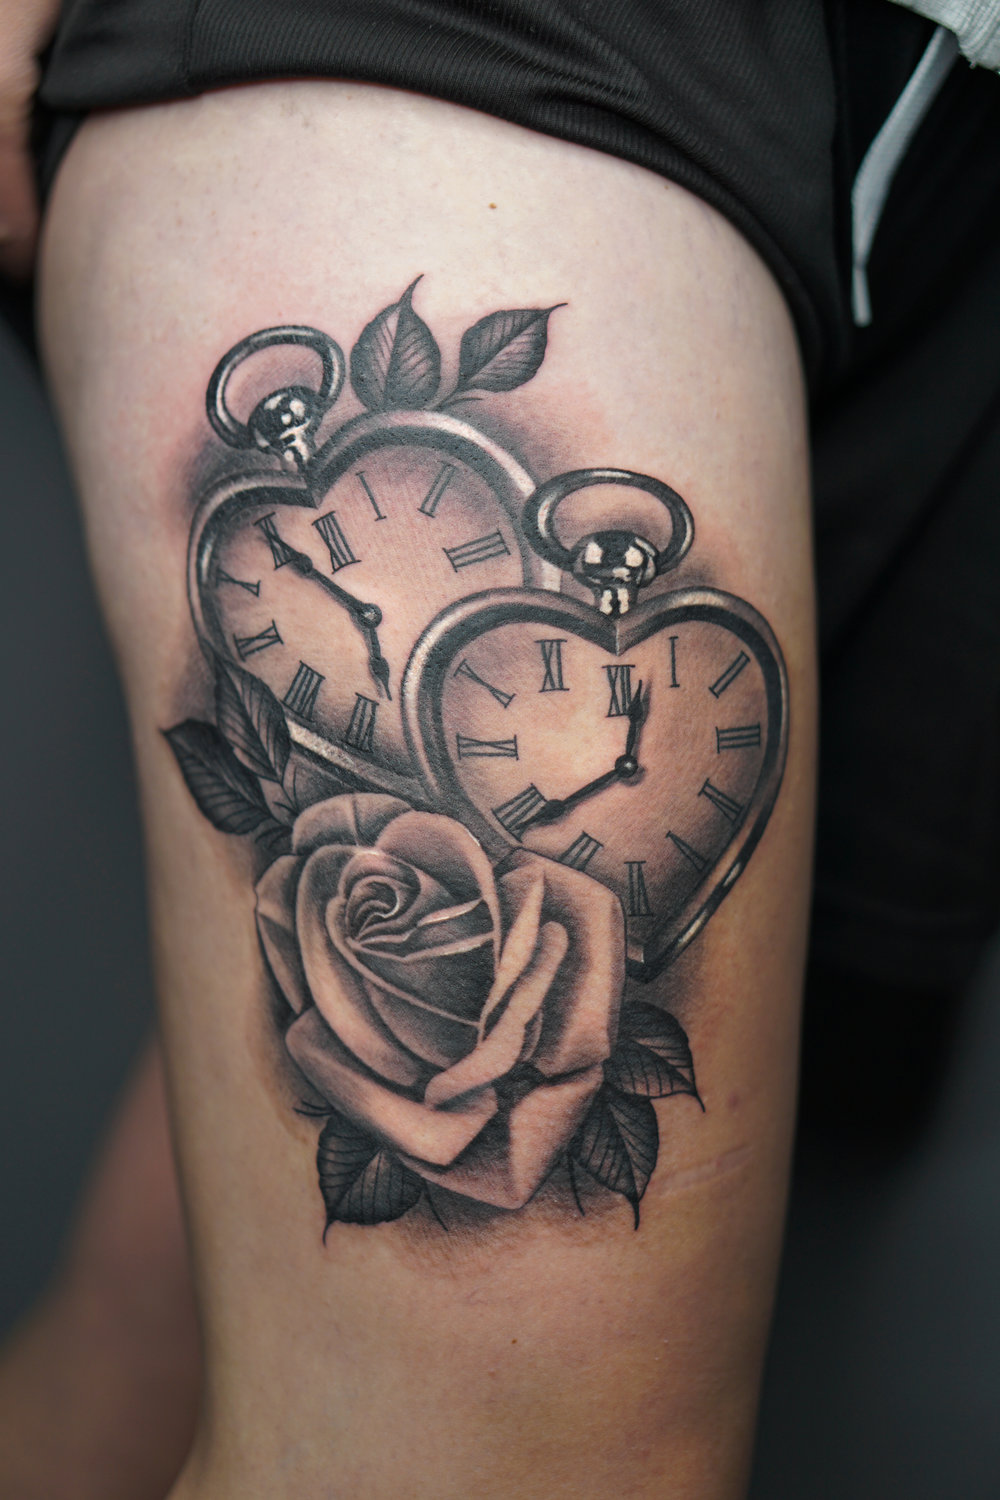 #blackhopetattoo #tattoo #hearttattoo pocketwatchtattoo #rosetattoo.jpg